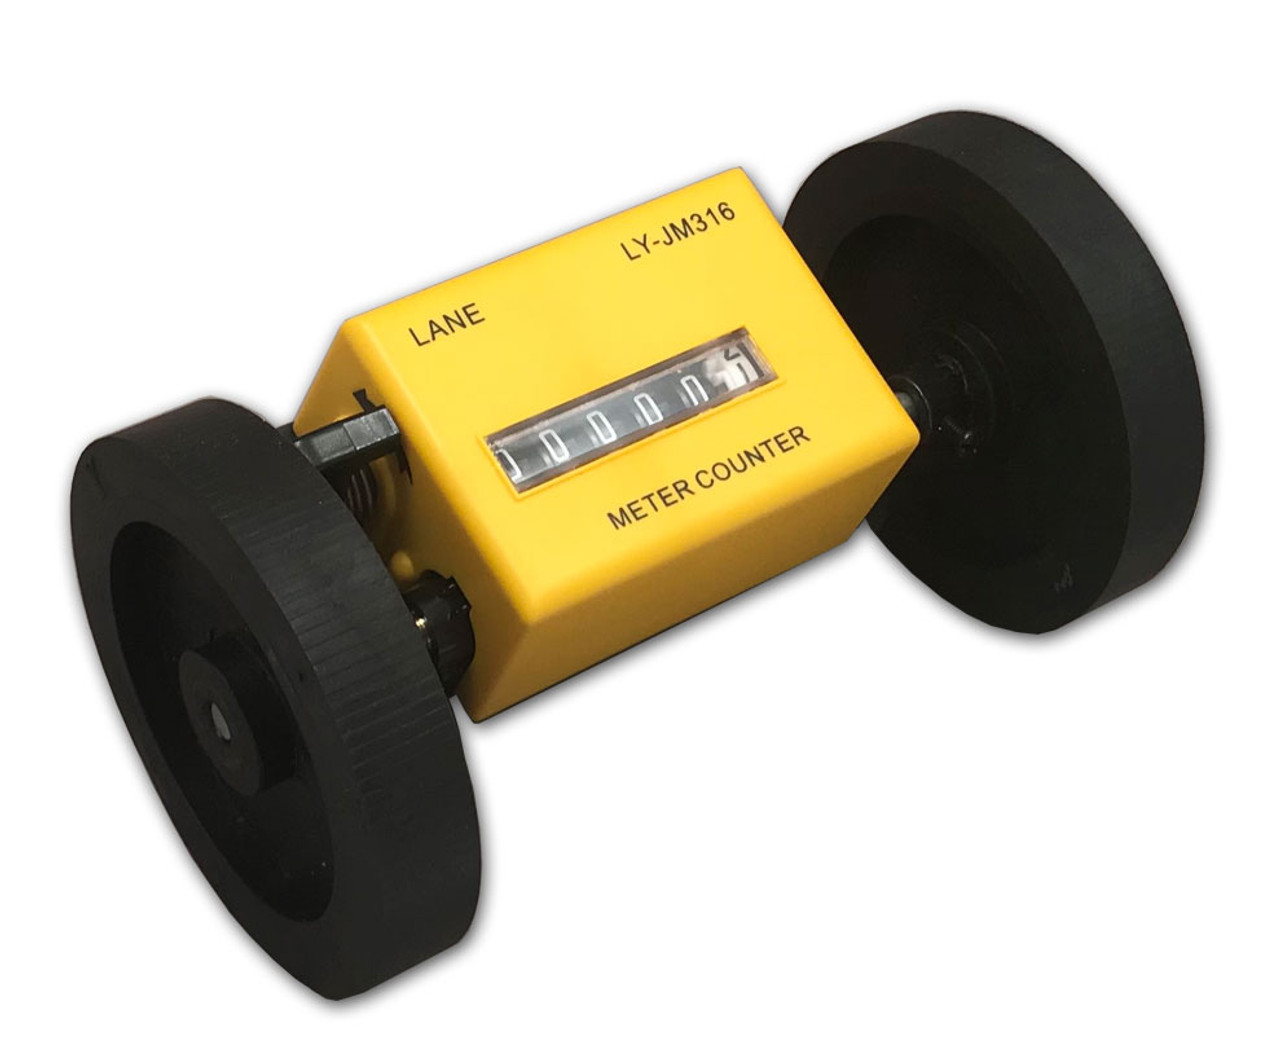 Yard Counter Meter Counter wire fabric length wheel textile mechanical meter counter